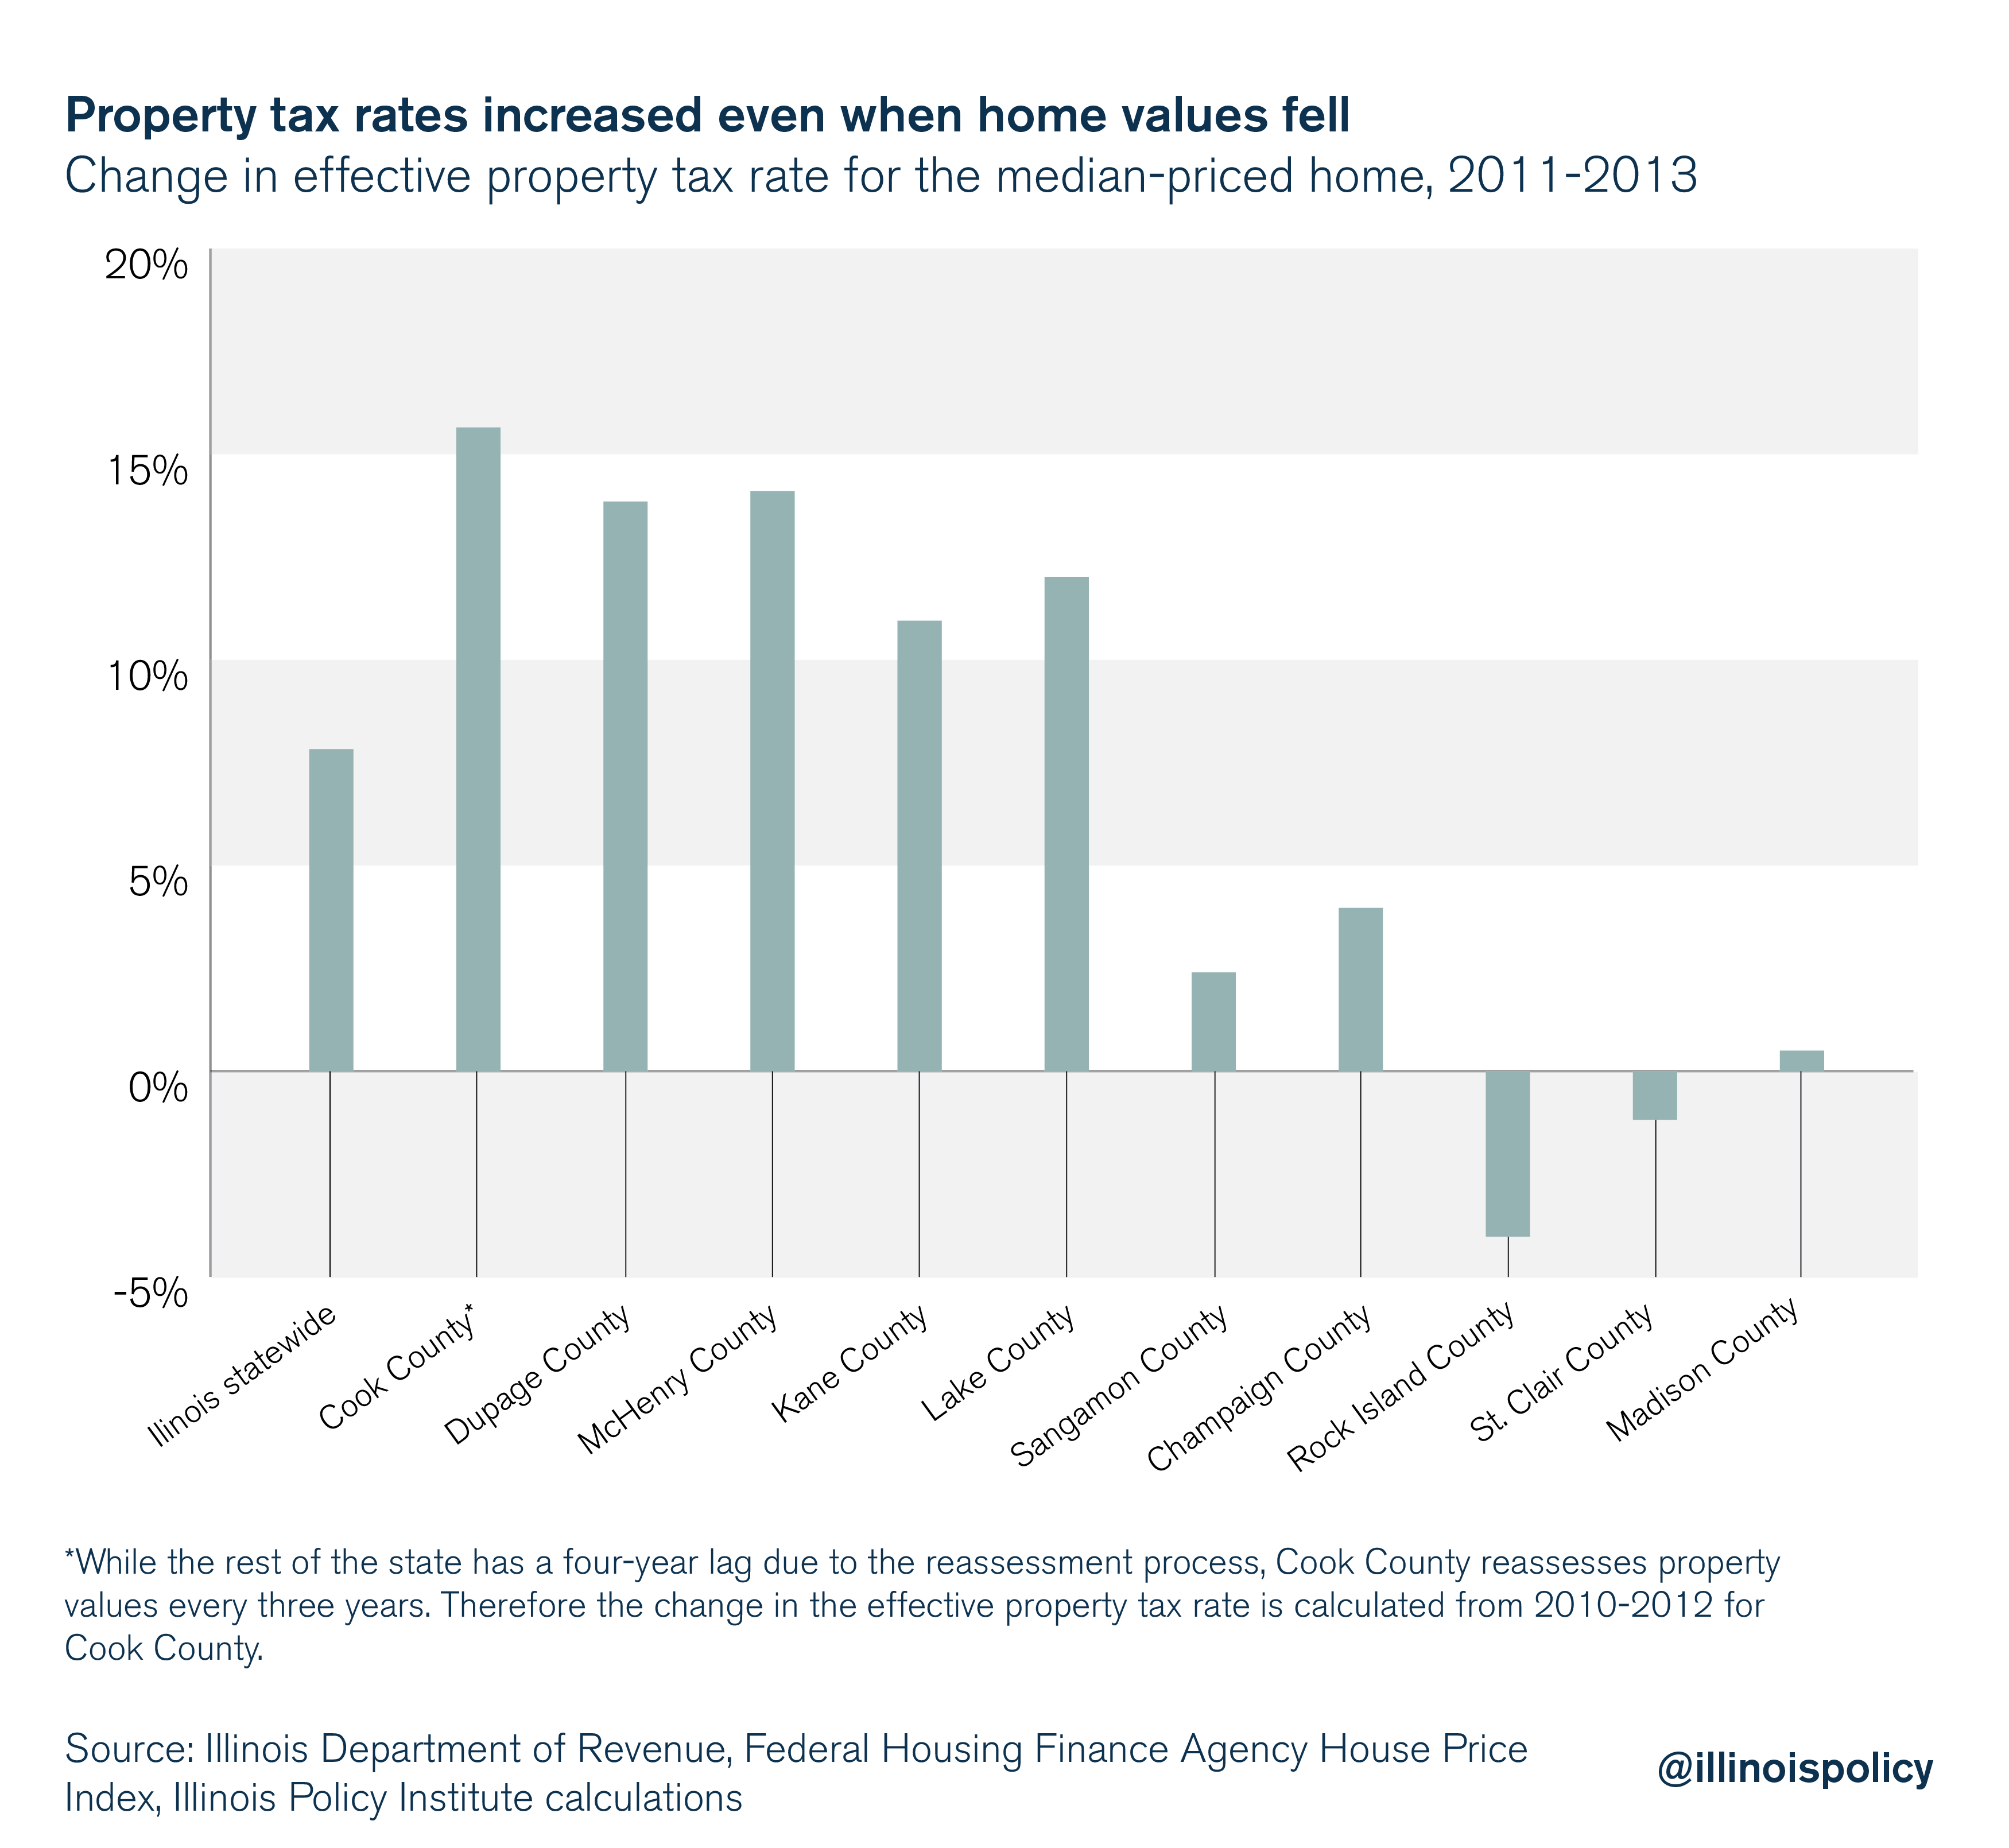 Property tax rates increased even when home values fell